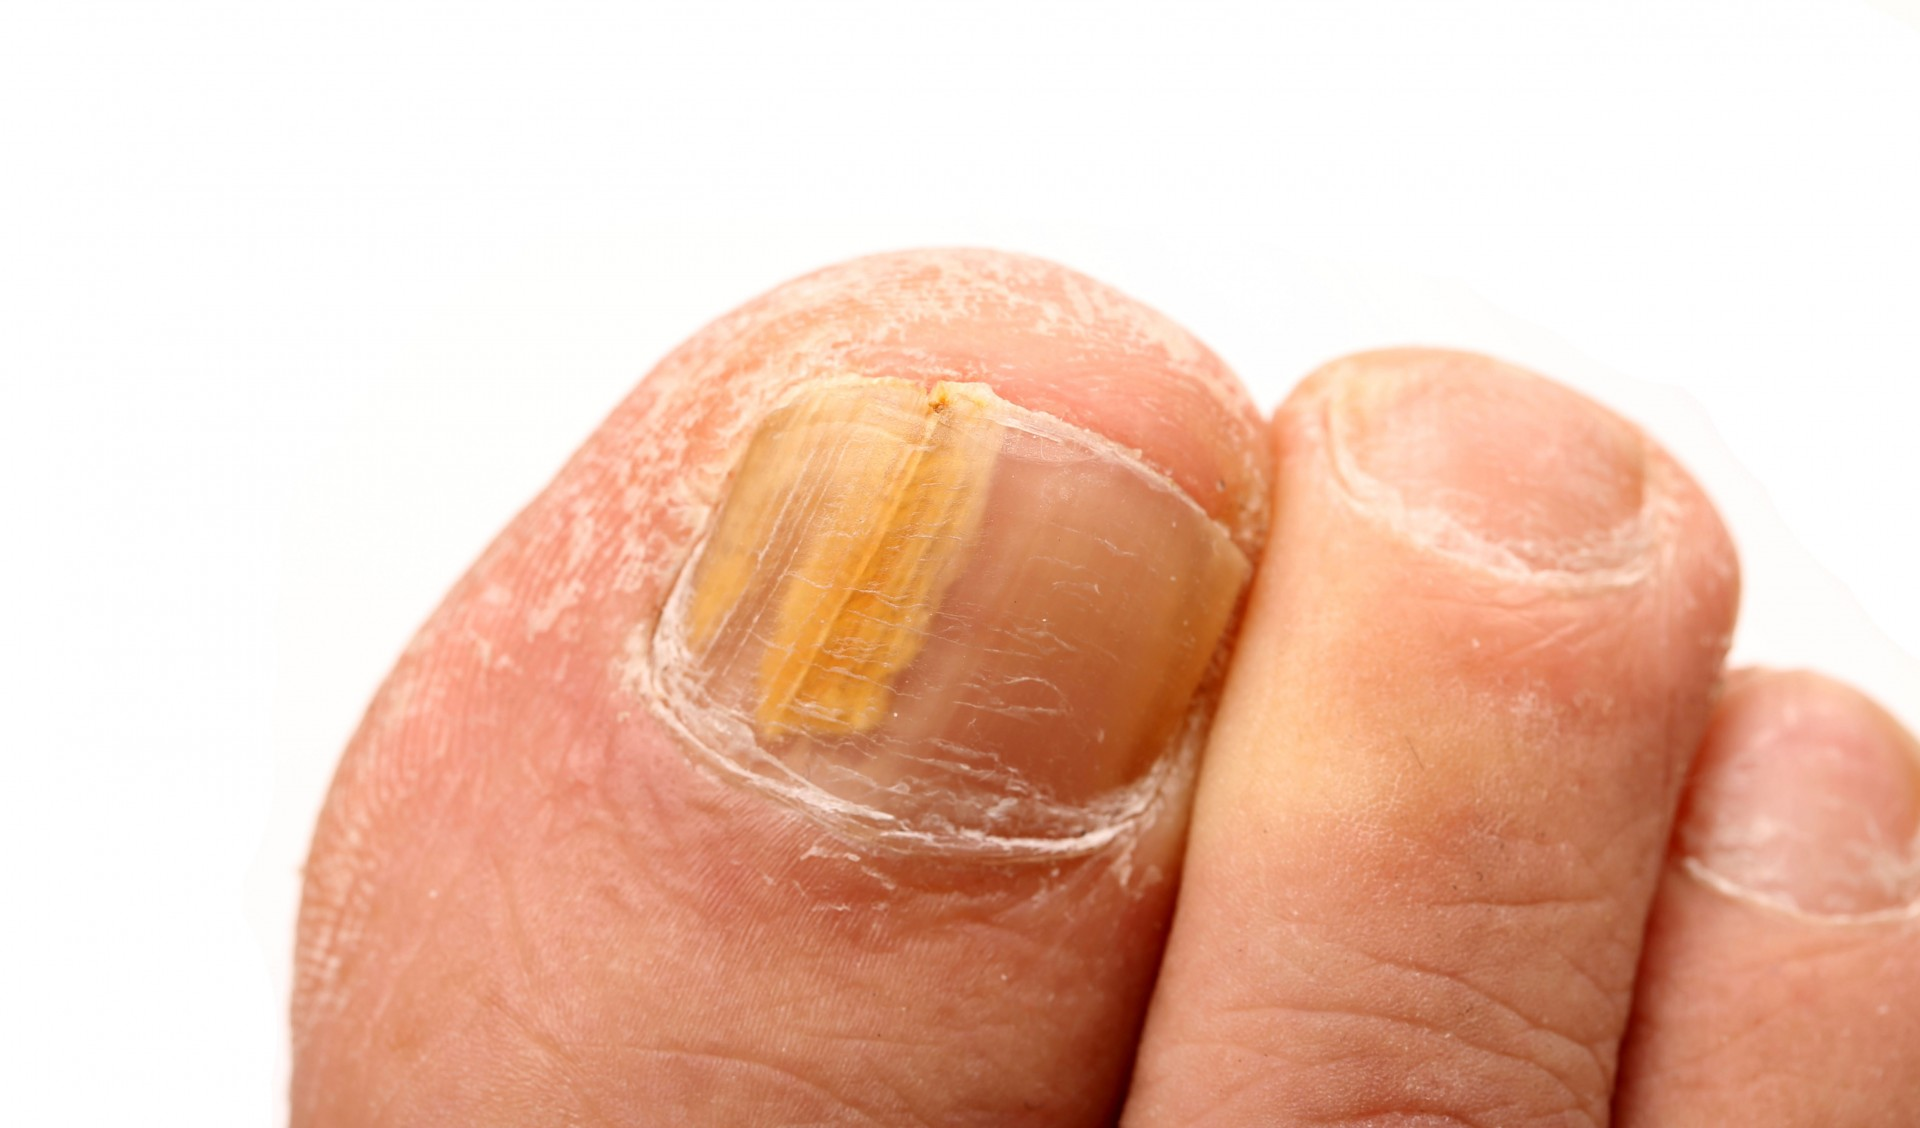 fungal nails-web.jpg